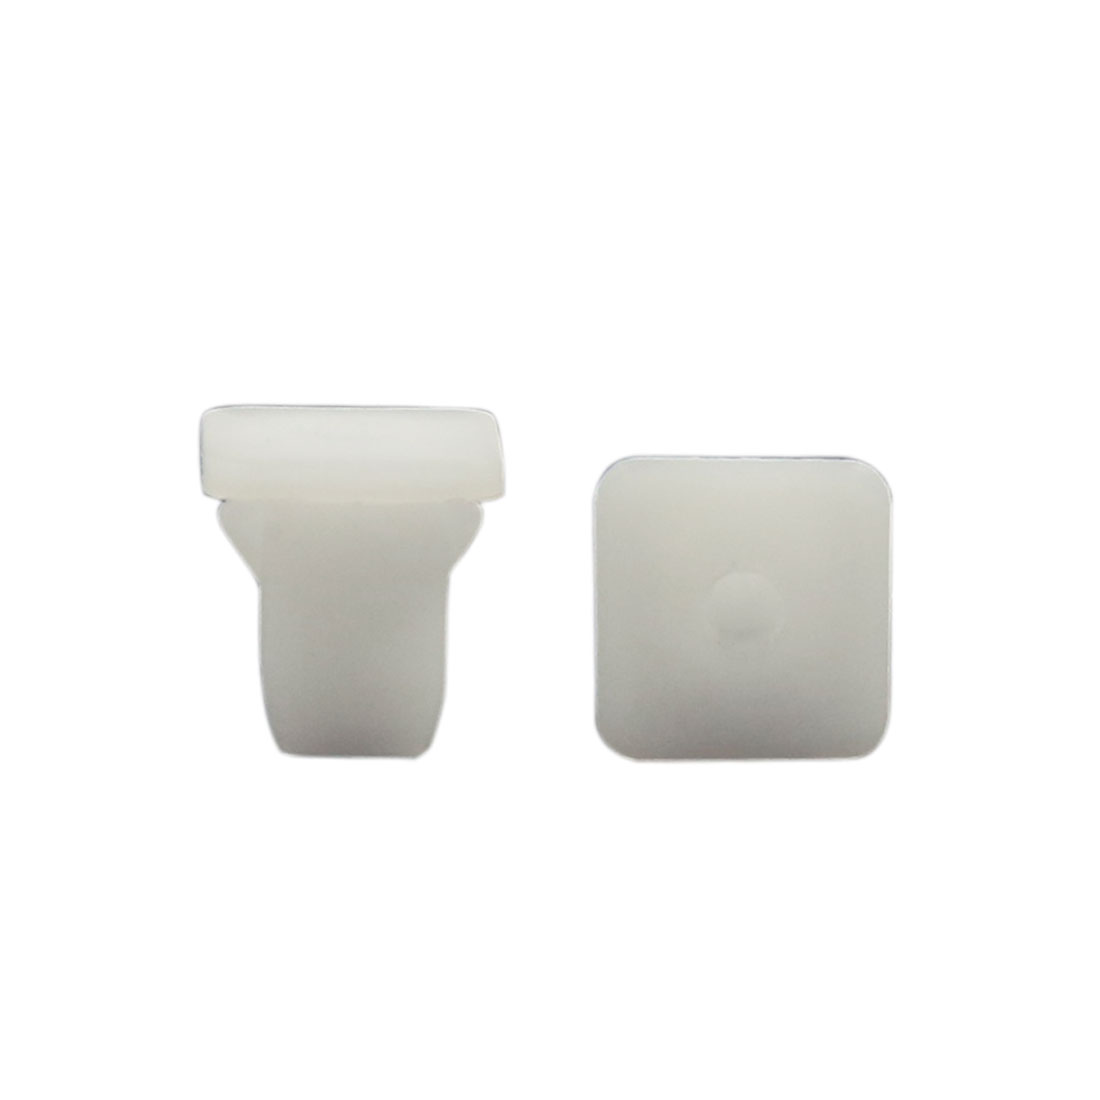 100 Pcs White Plastic Square Car 8mm Hole Rivets Fastener Panel Fixing Clips